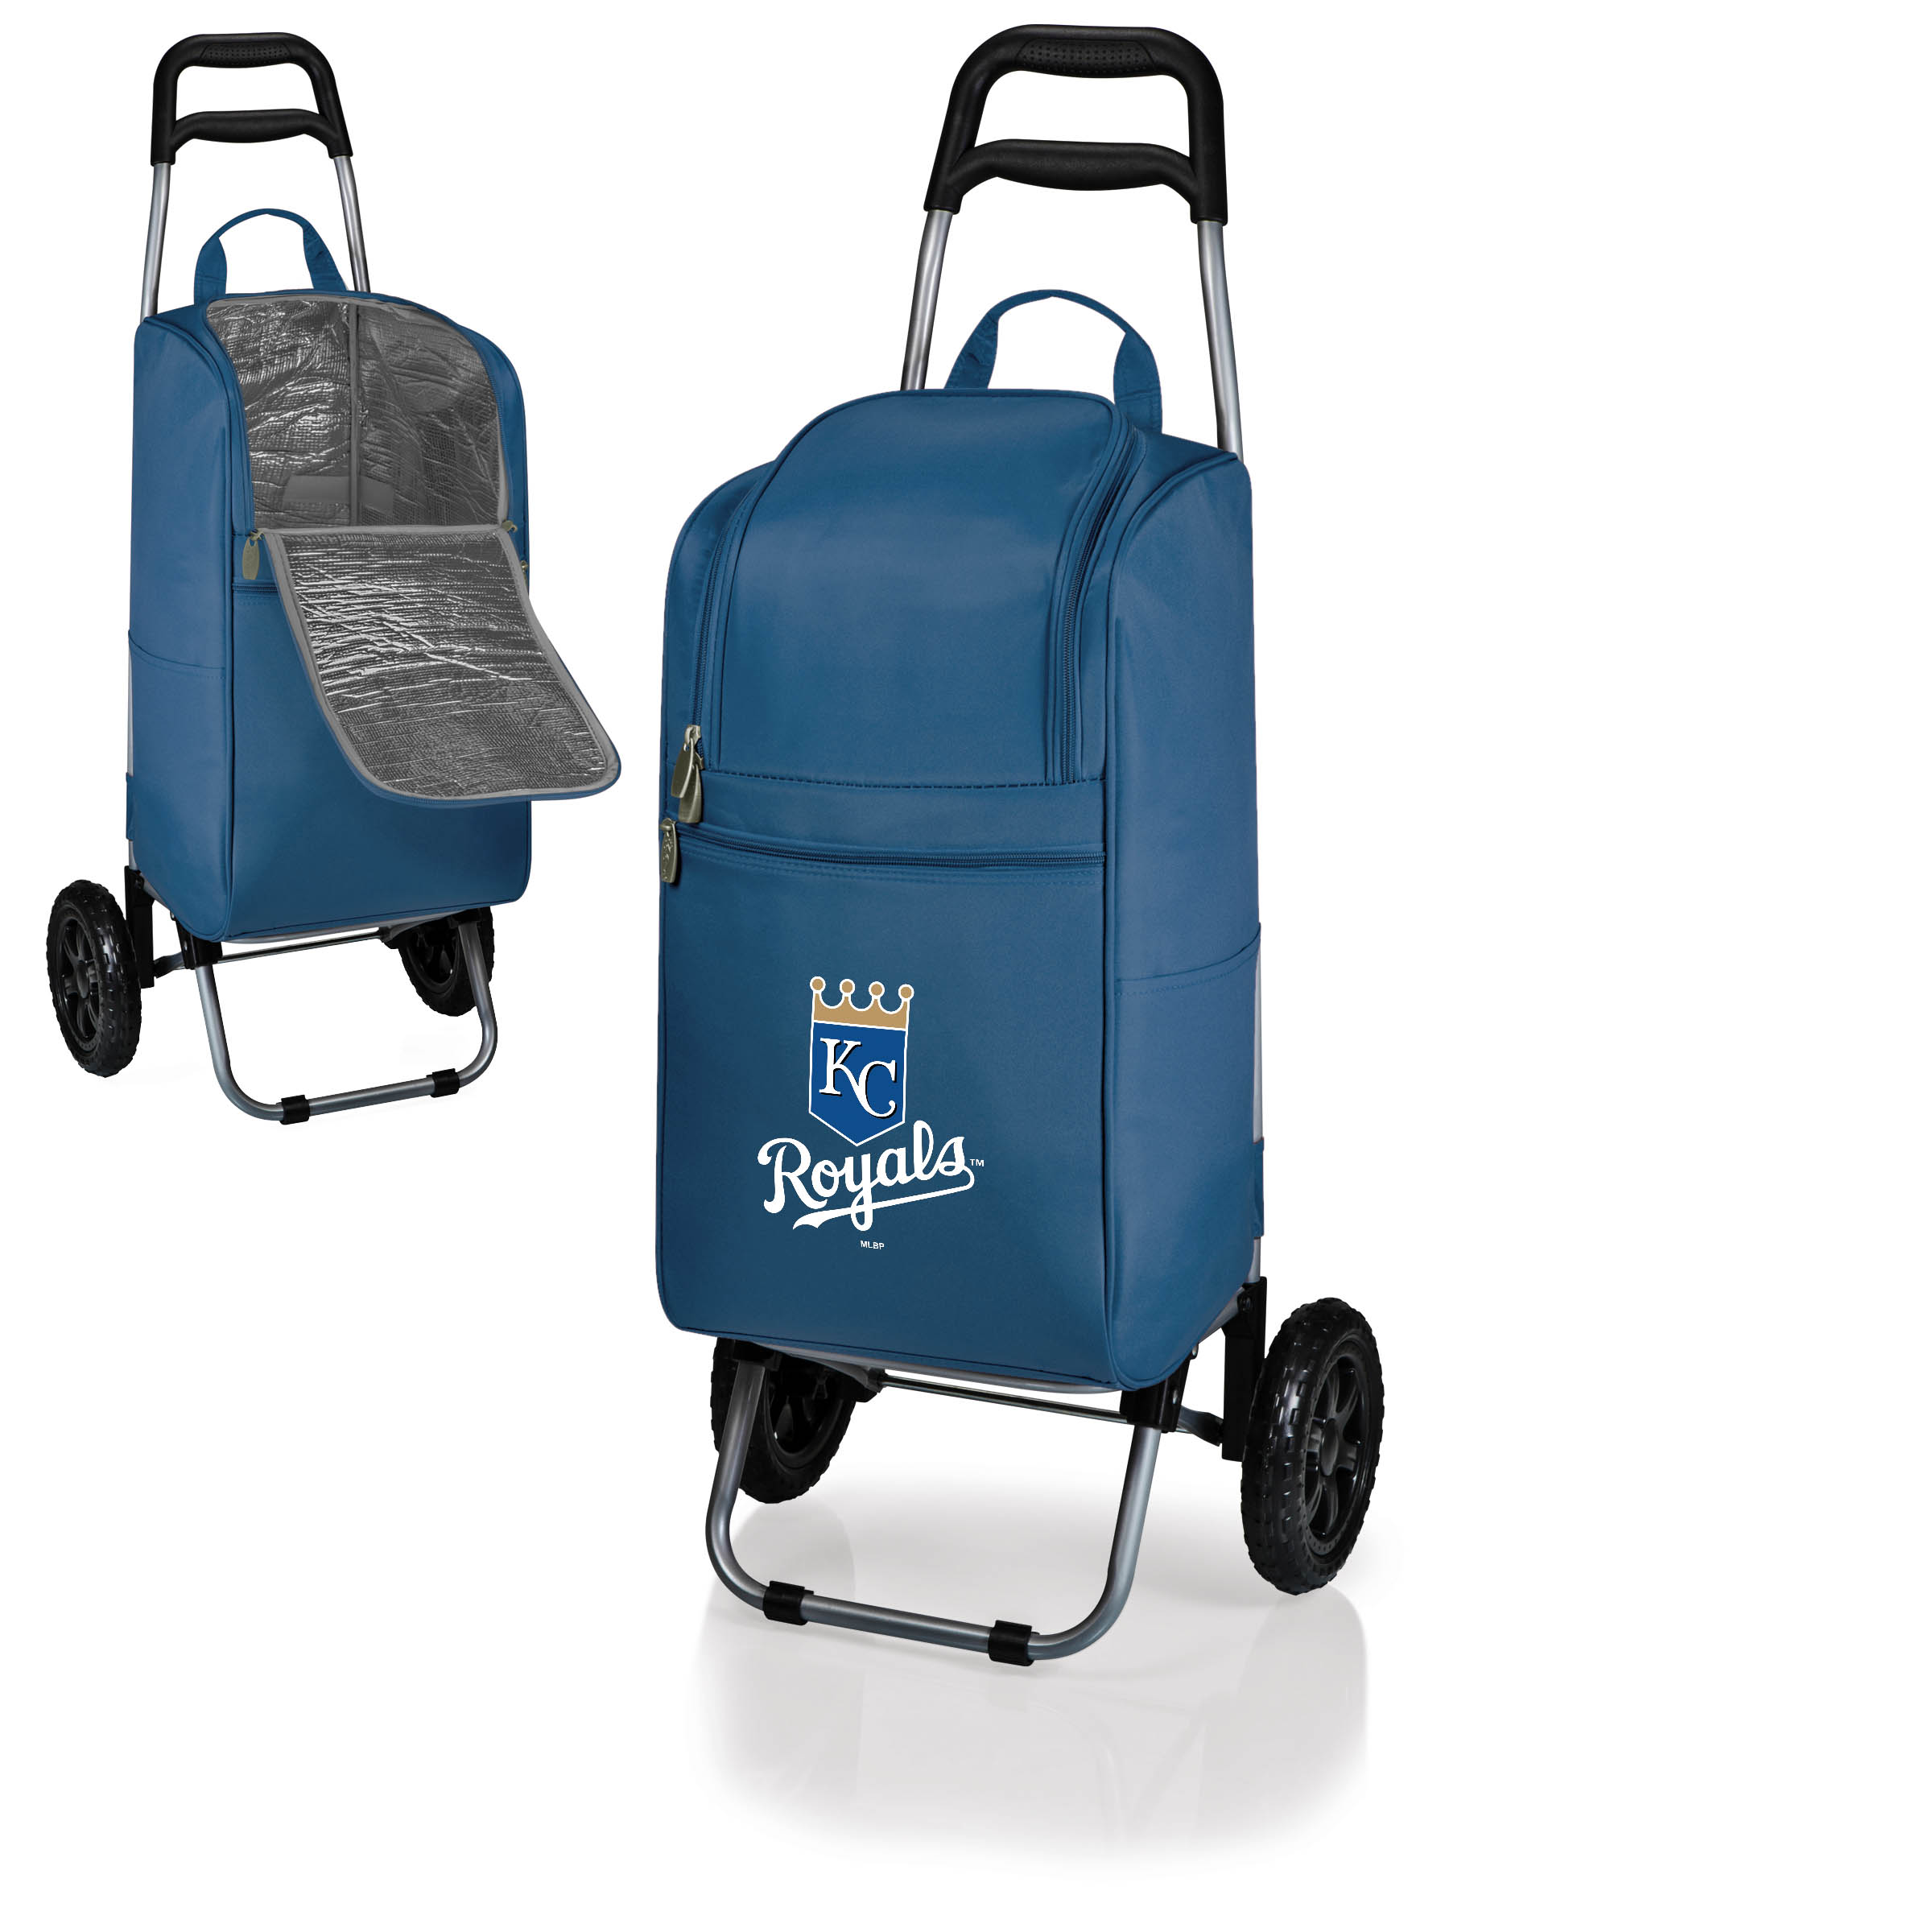 Kansas City Royals Cart Cooler - Navy - No Size